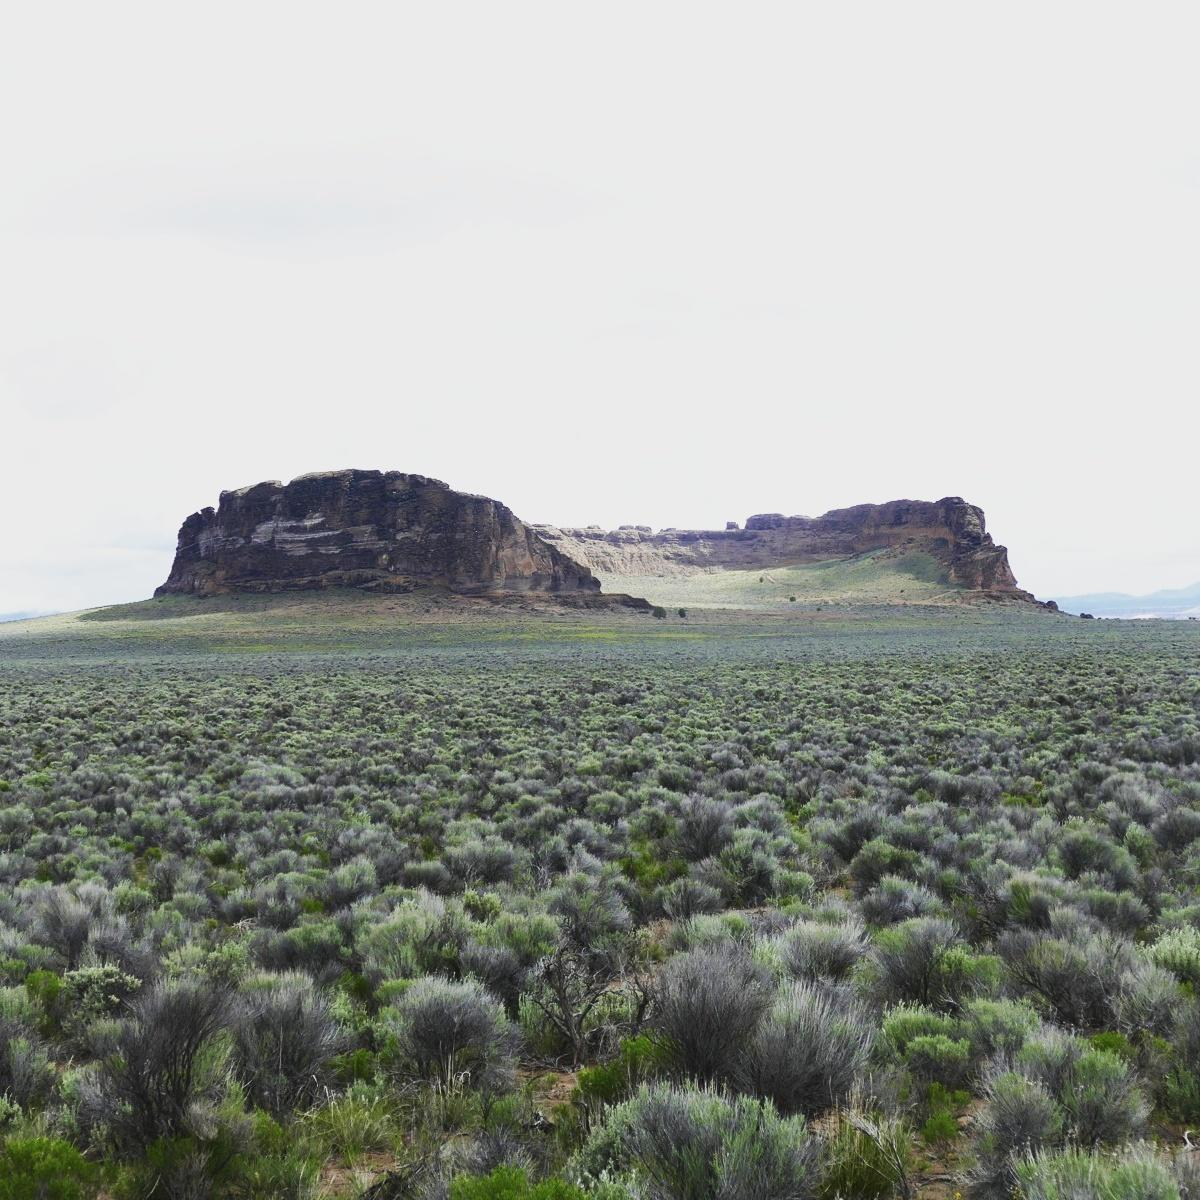 Eastern Oregon is full of sagebrush and rimrock (seen here at Fort Rock, where Noah saw his yearly Sagebrush Sparrows and Sage Thrashers). Noah Strycker